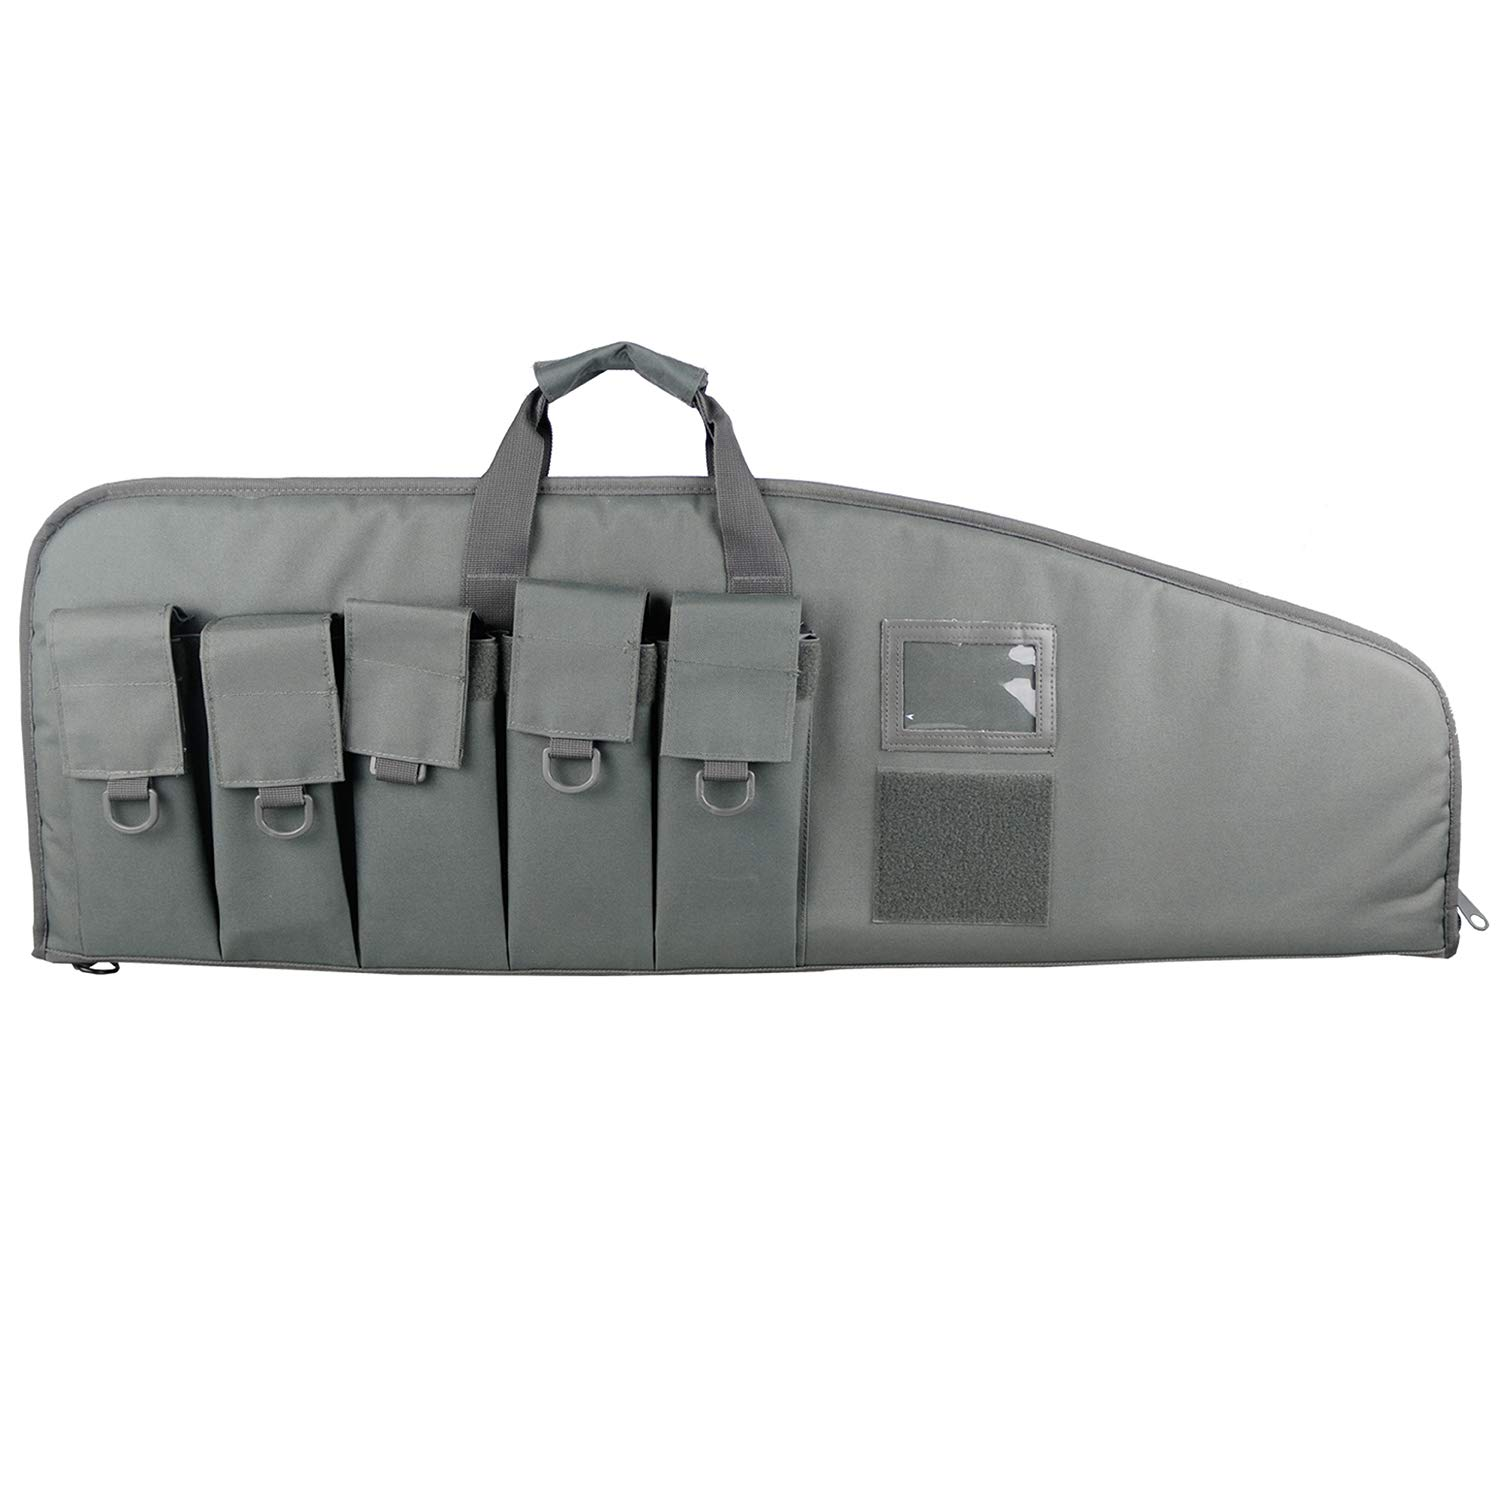 XWLSPORT Gun Case Tactical Assault Rifle Case Heavy Duty Rifle Bag for AR15/M4 with 5 Magazine Pouches (Gray, 42) ... by XWLSPORT